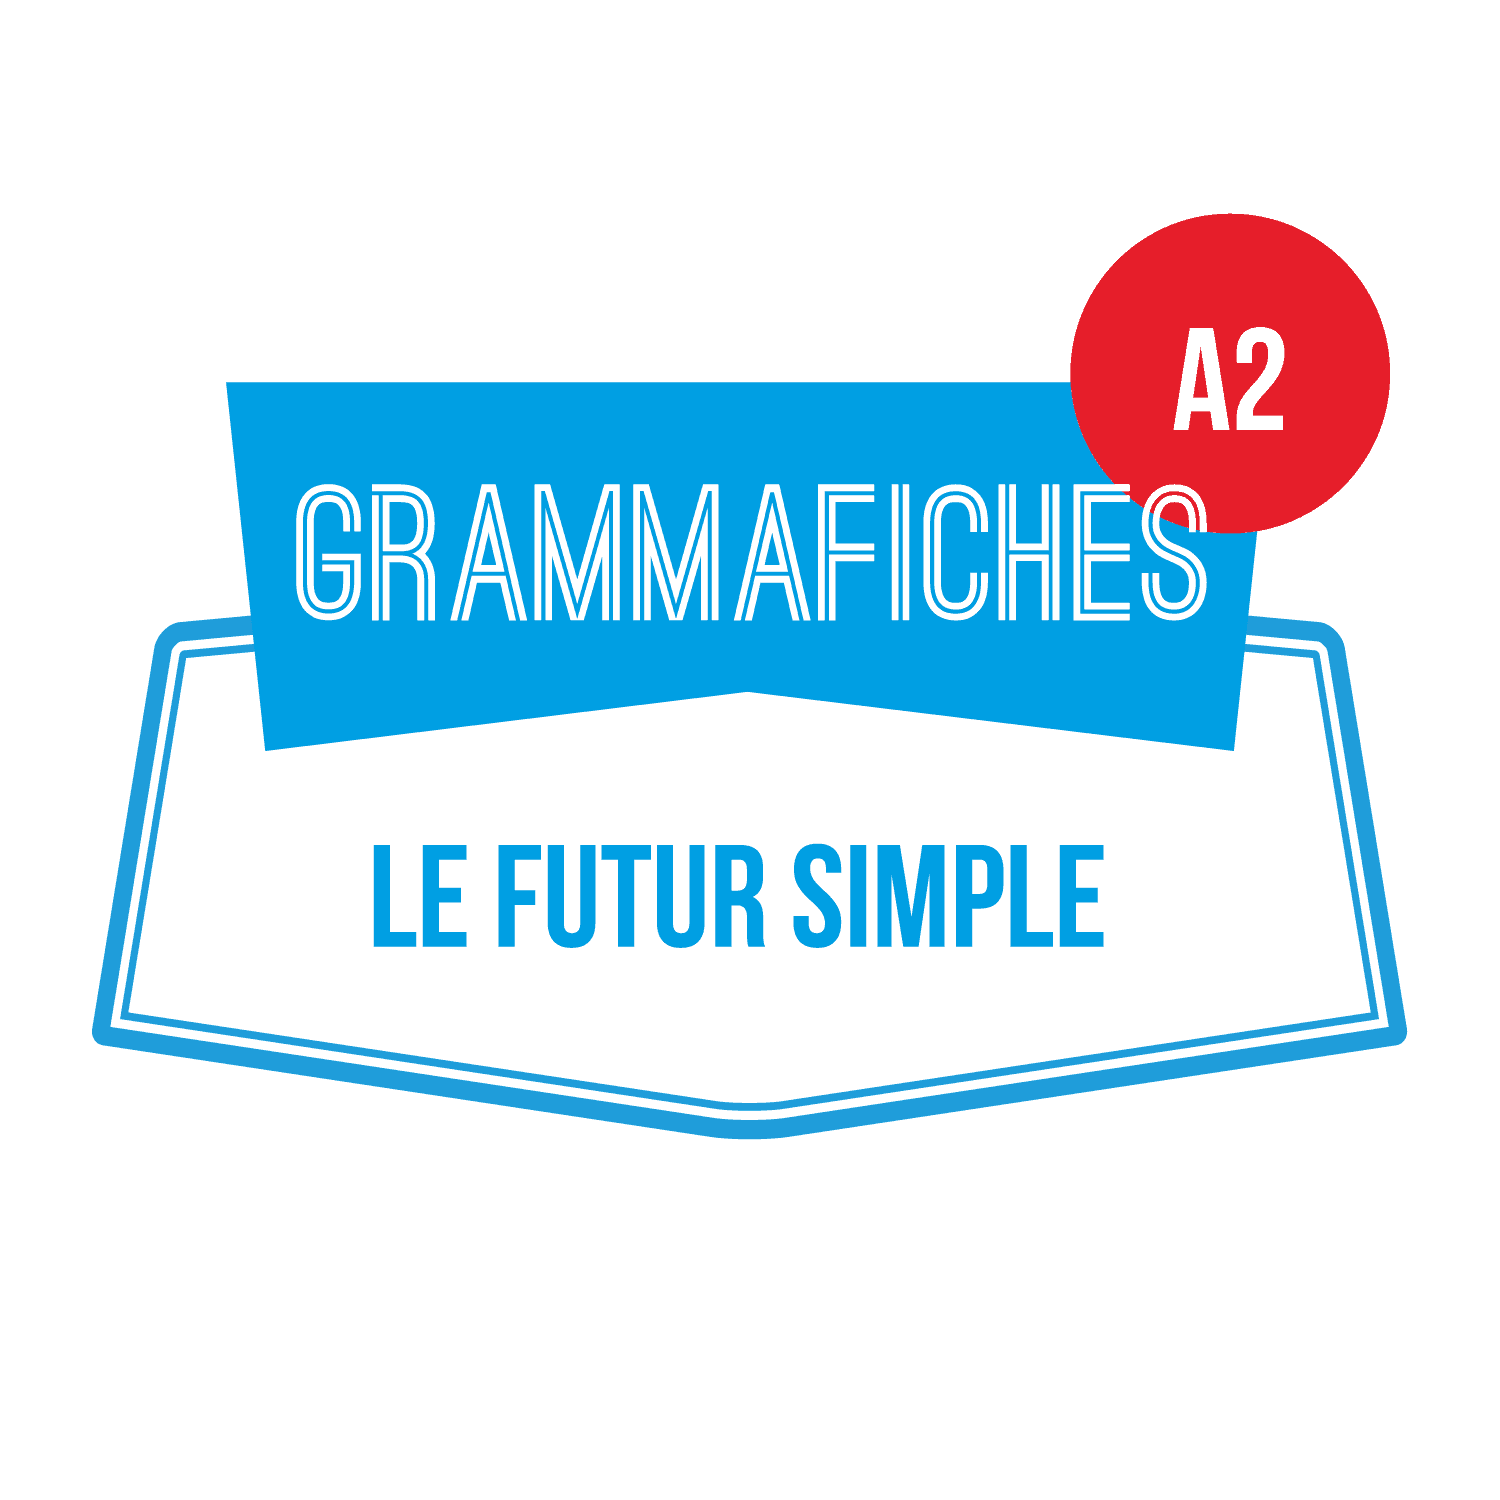 GRAMMAFICHE A2: le futur simple